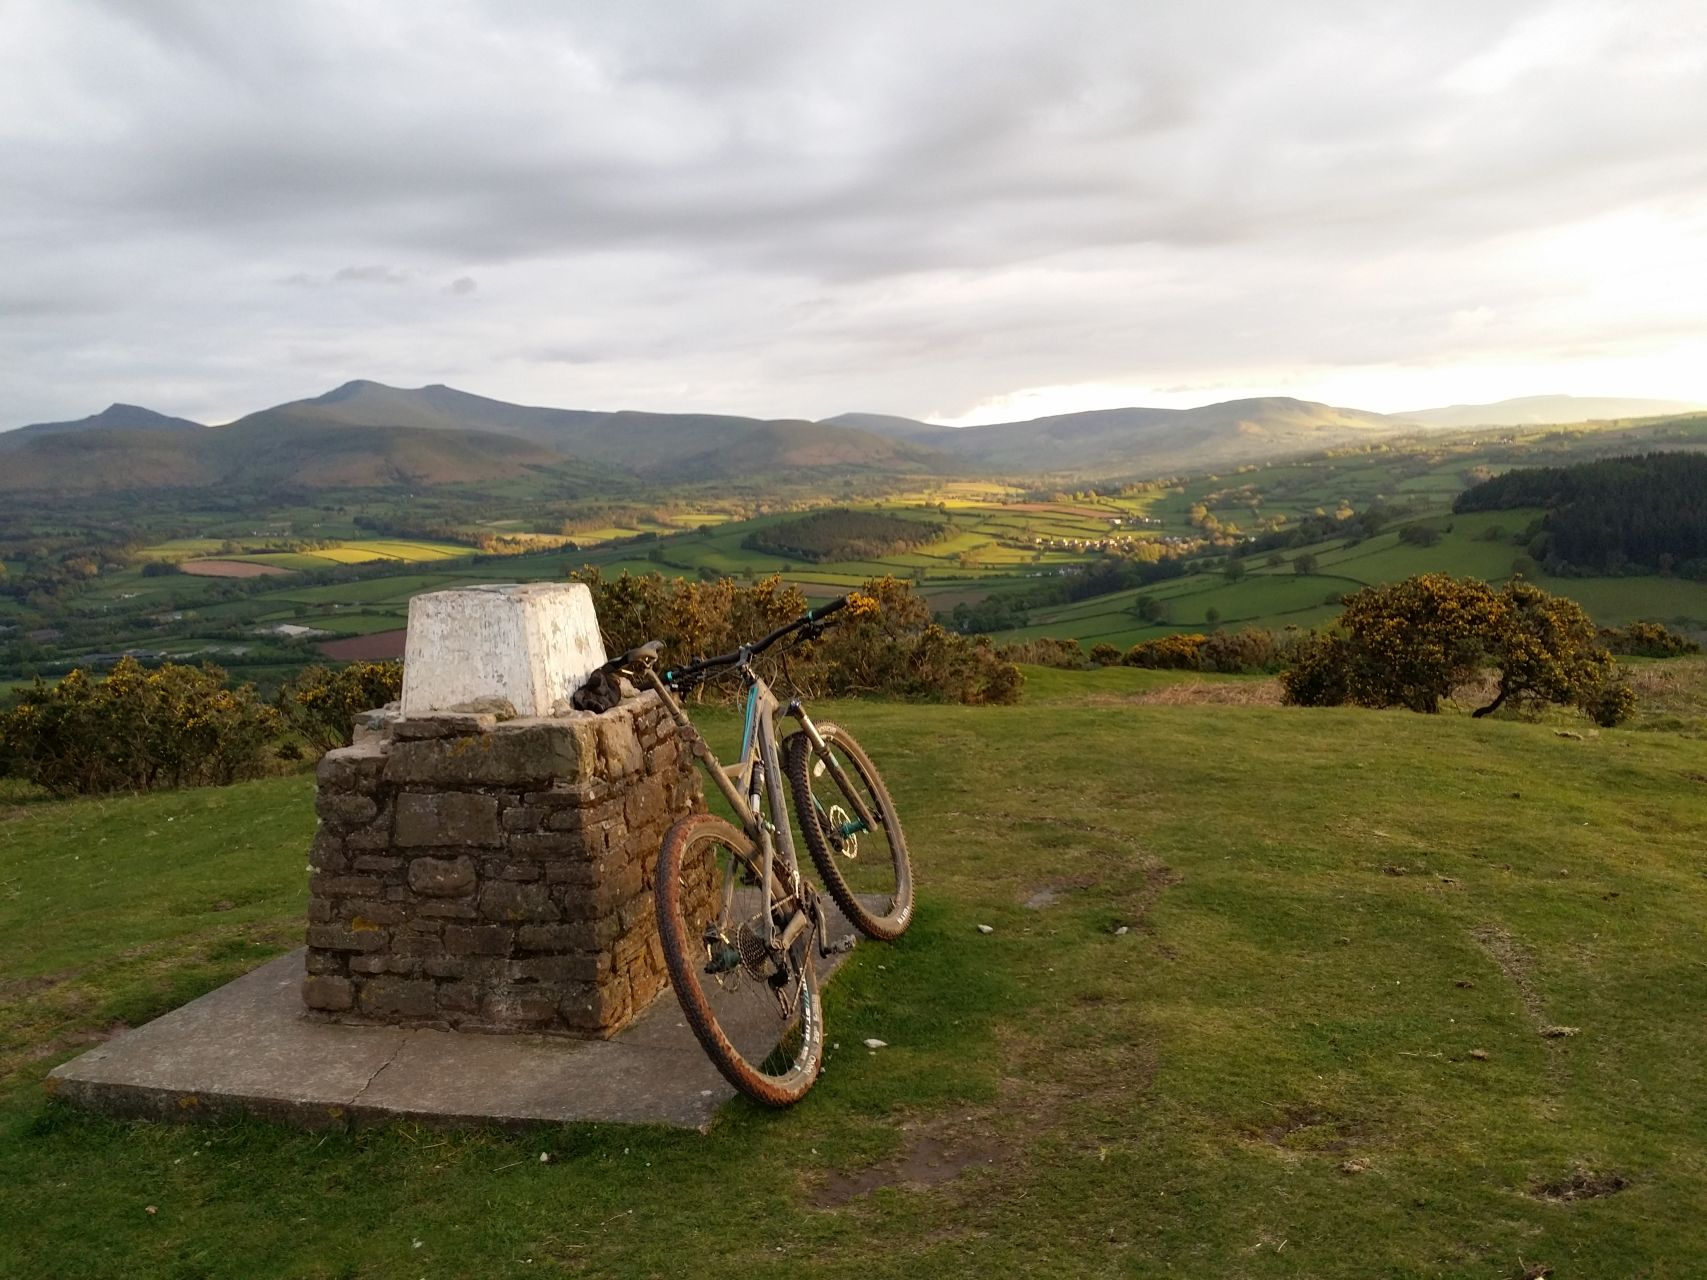 Day 6 - Pen y Crug at sunset looking toward Brecon Beacons